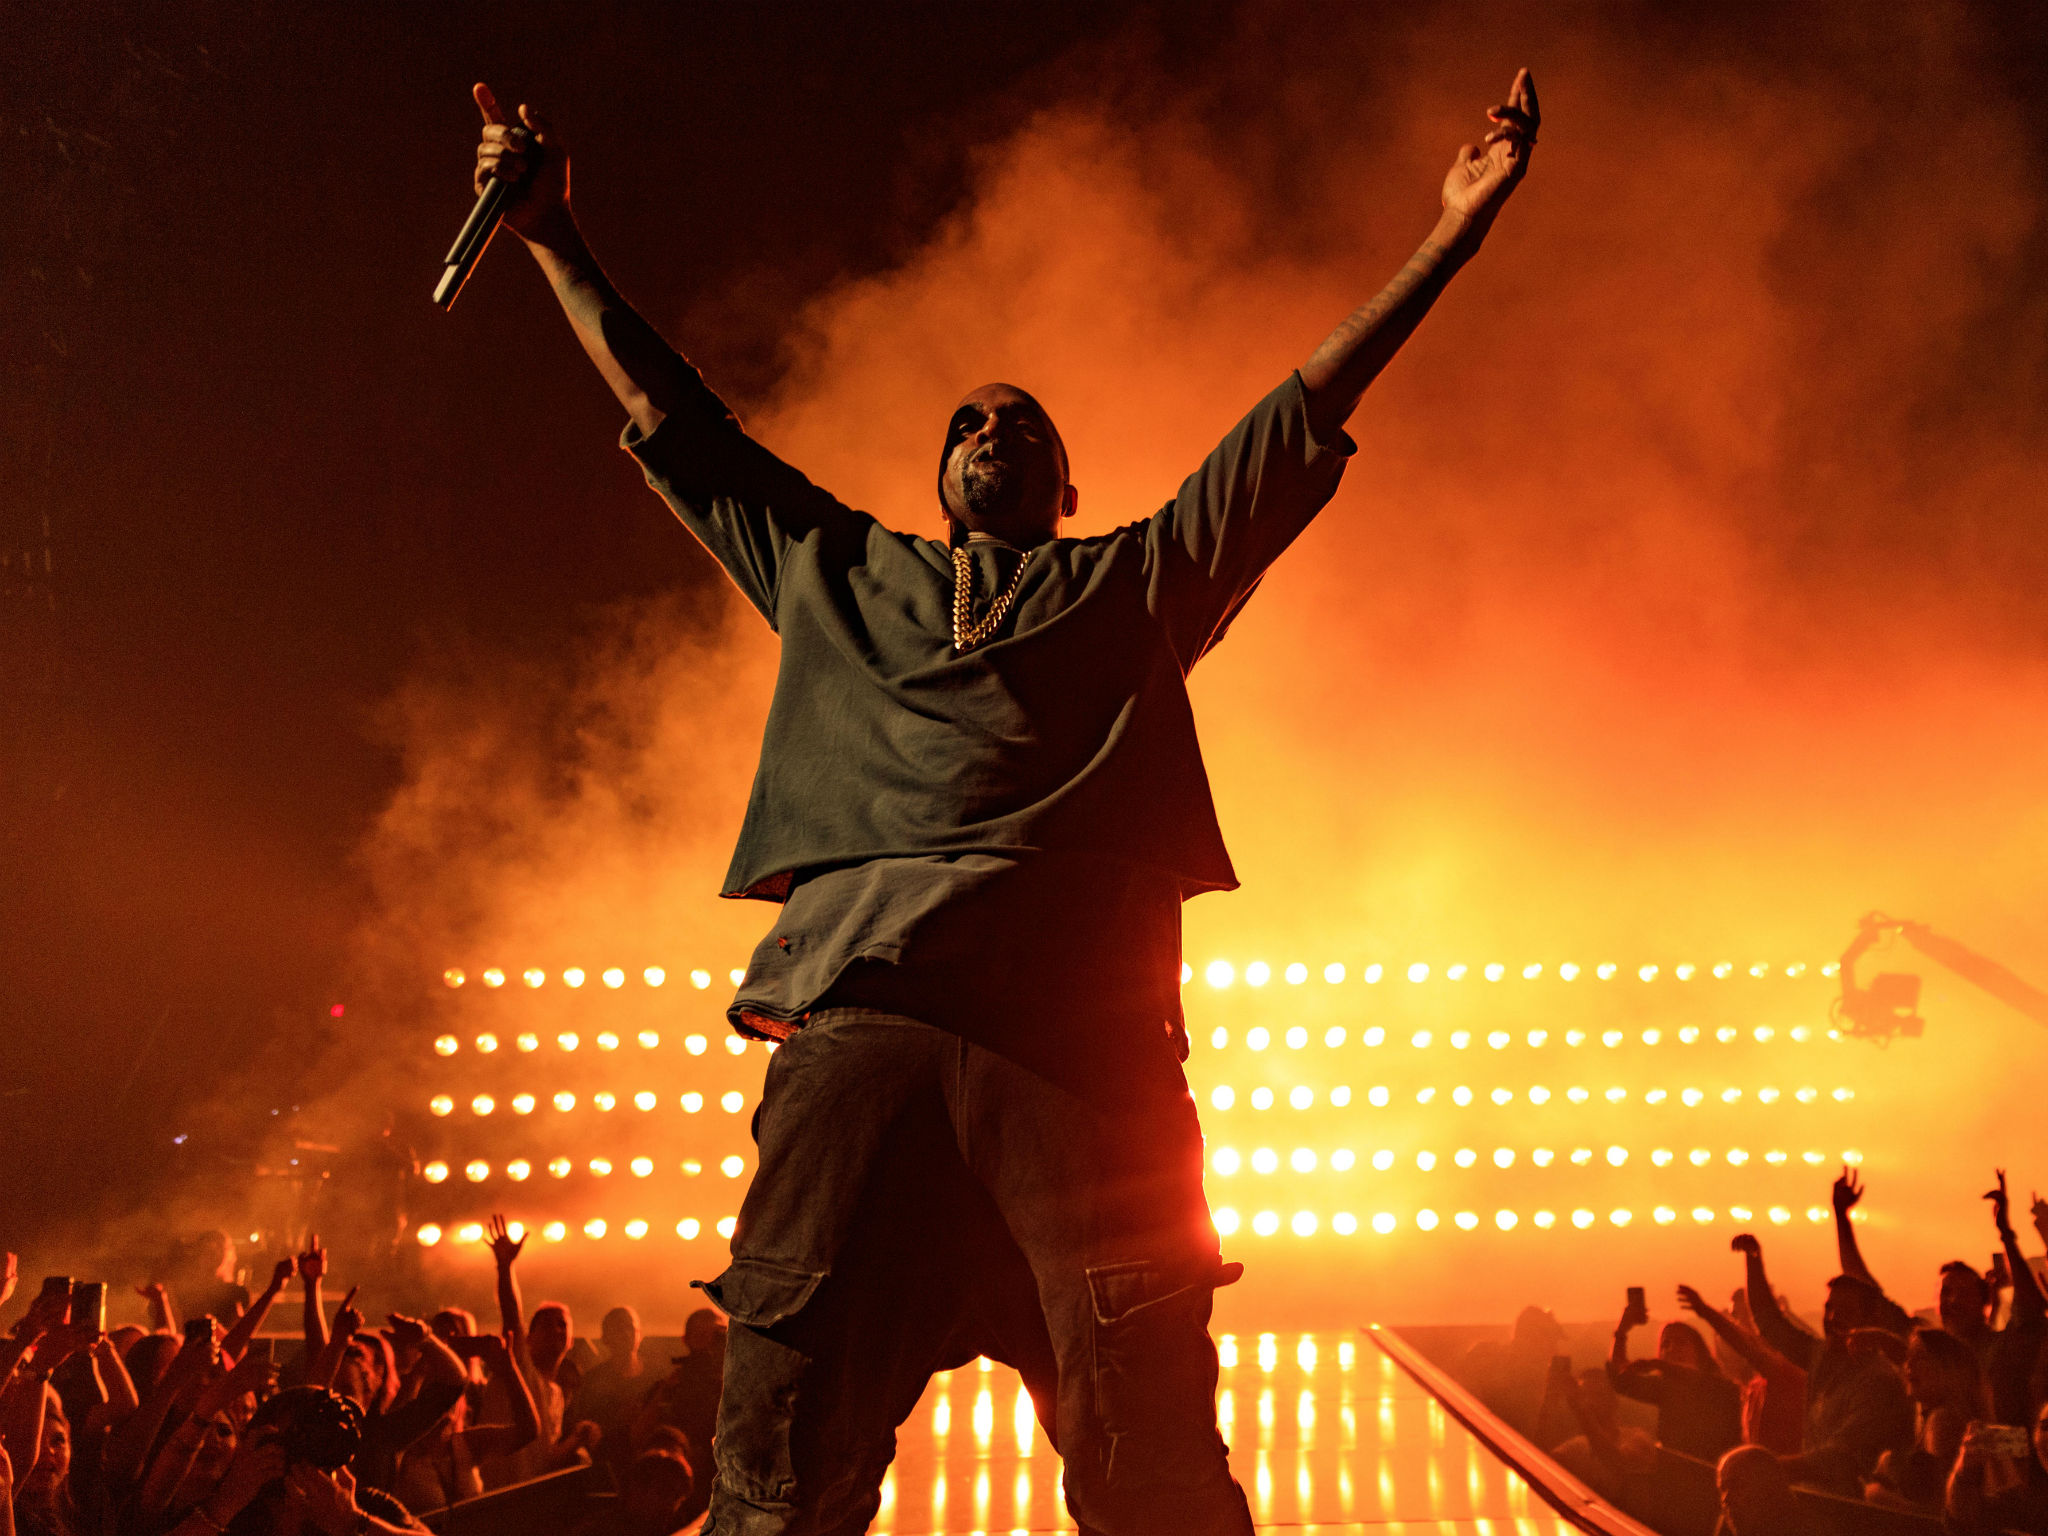 Kanye West on Stage // Source: www.independent.co.uk/